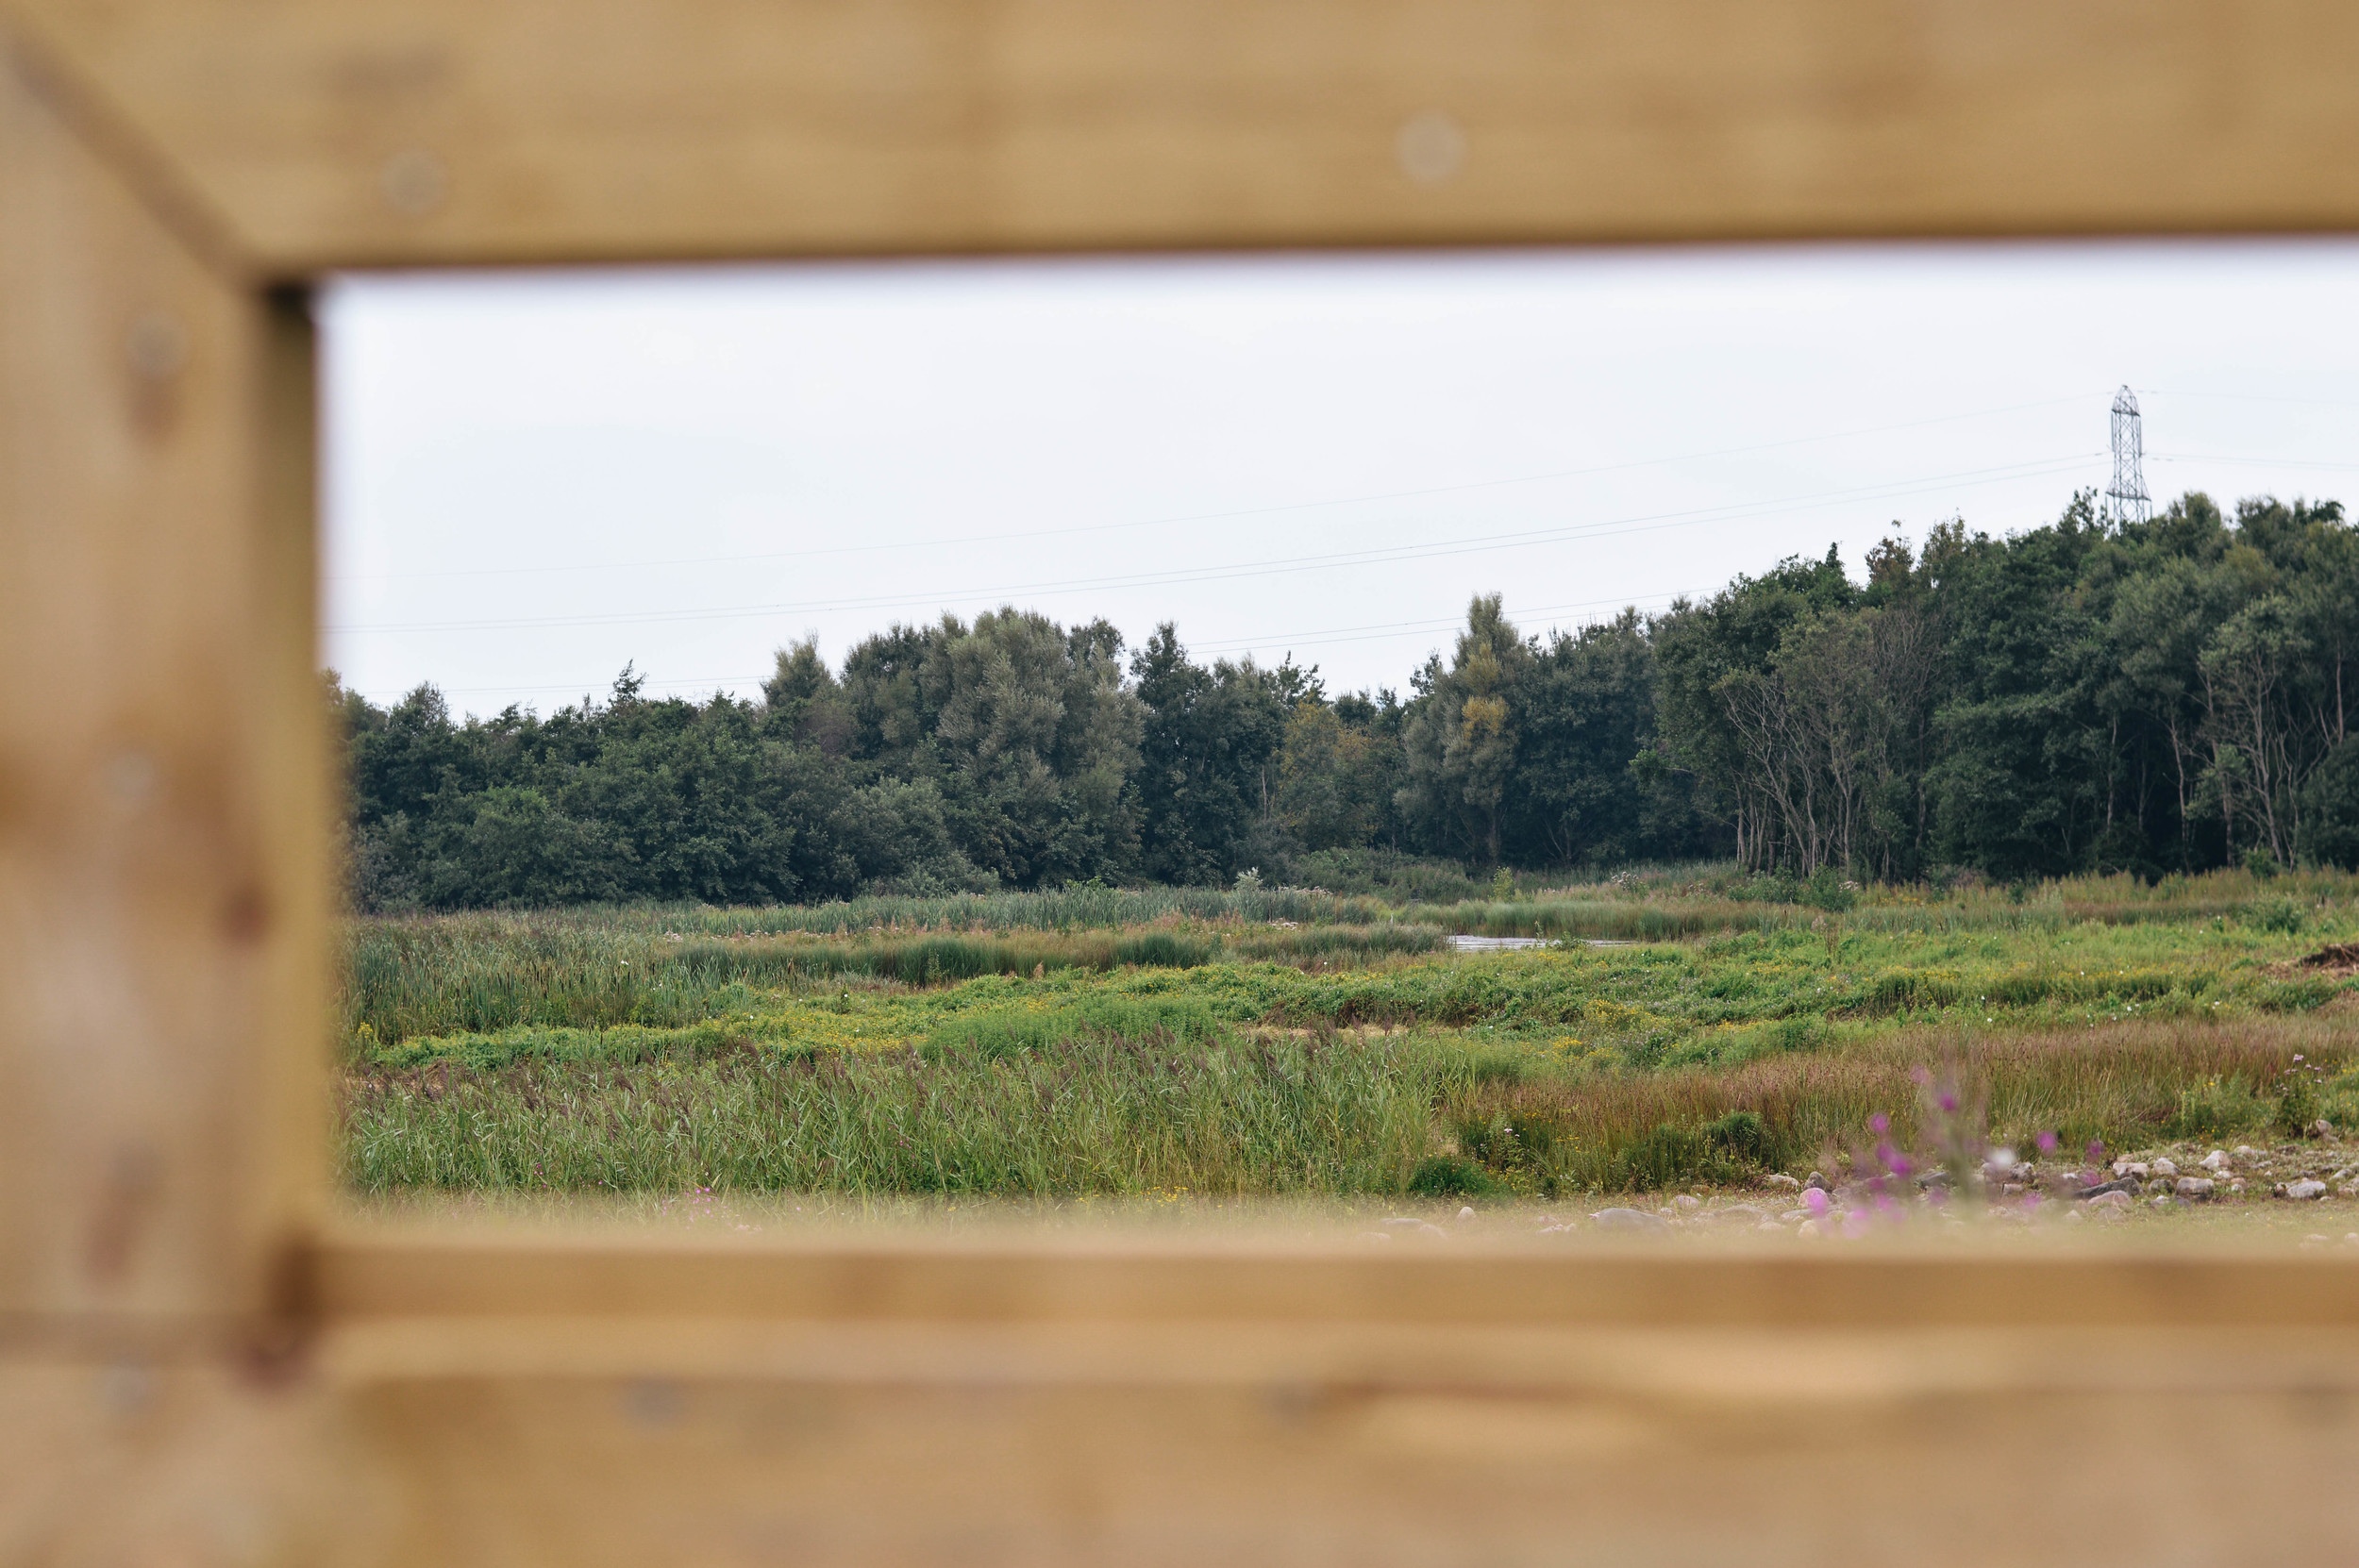 The view beyond the hide.